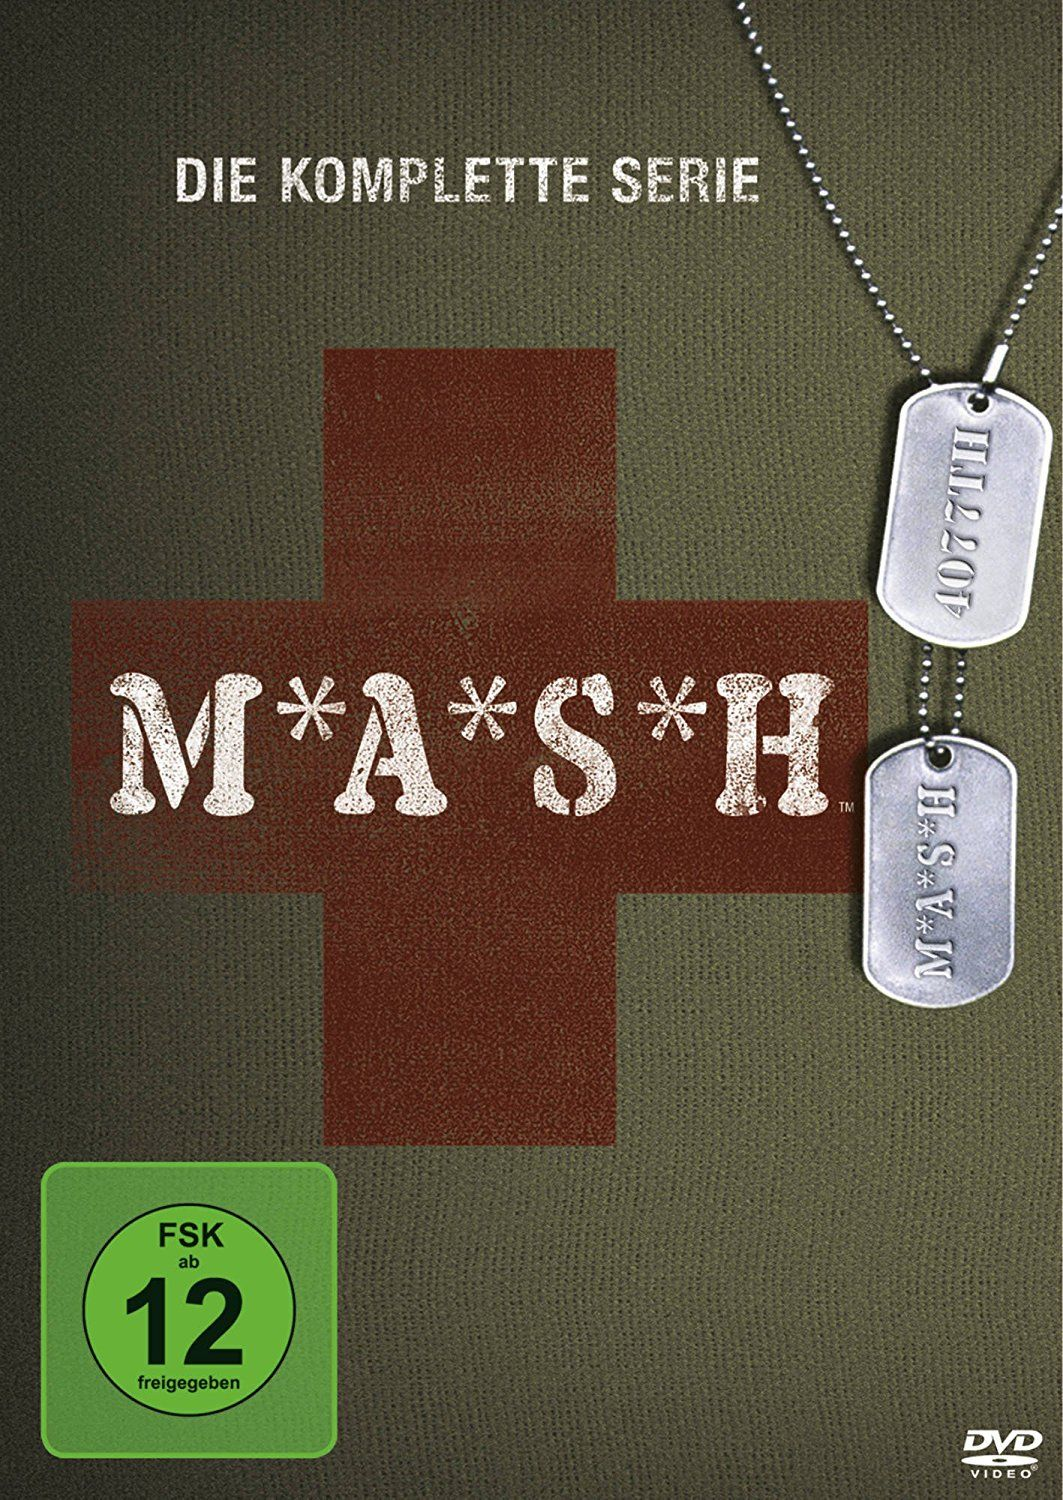 M*A*S*H - Die komplette Serie [33 DVDs]: Amazon.de: Harry Morgan, Alan Alda, Wayne Rogers: DVD & Blu-ray